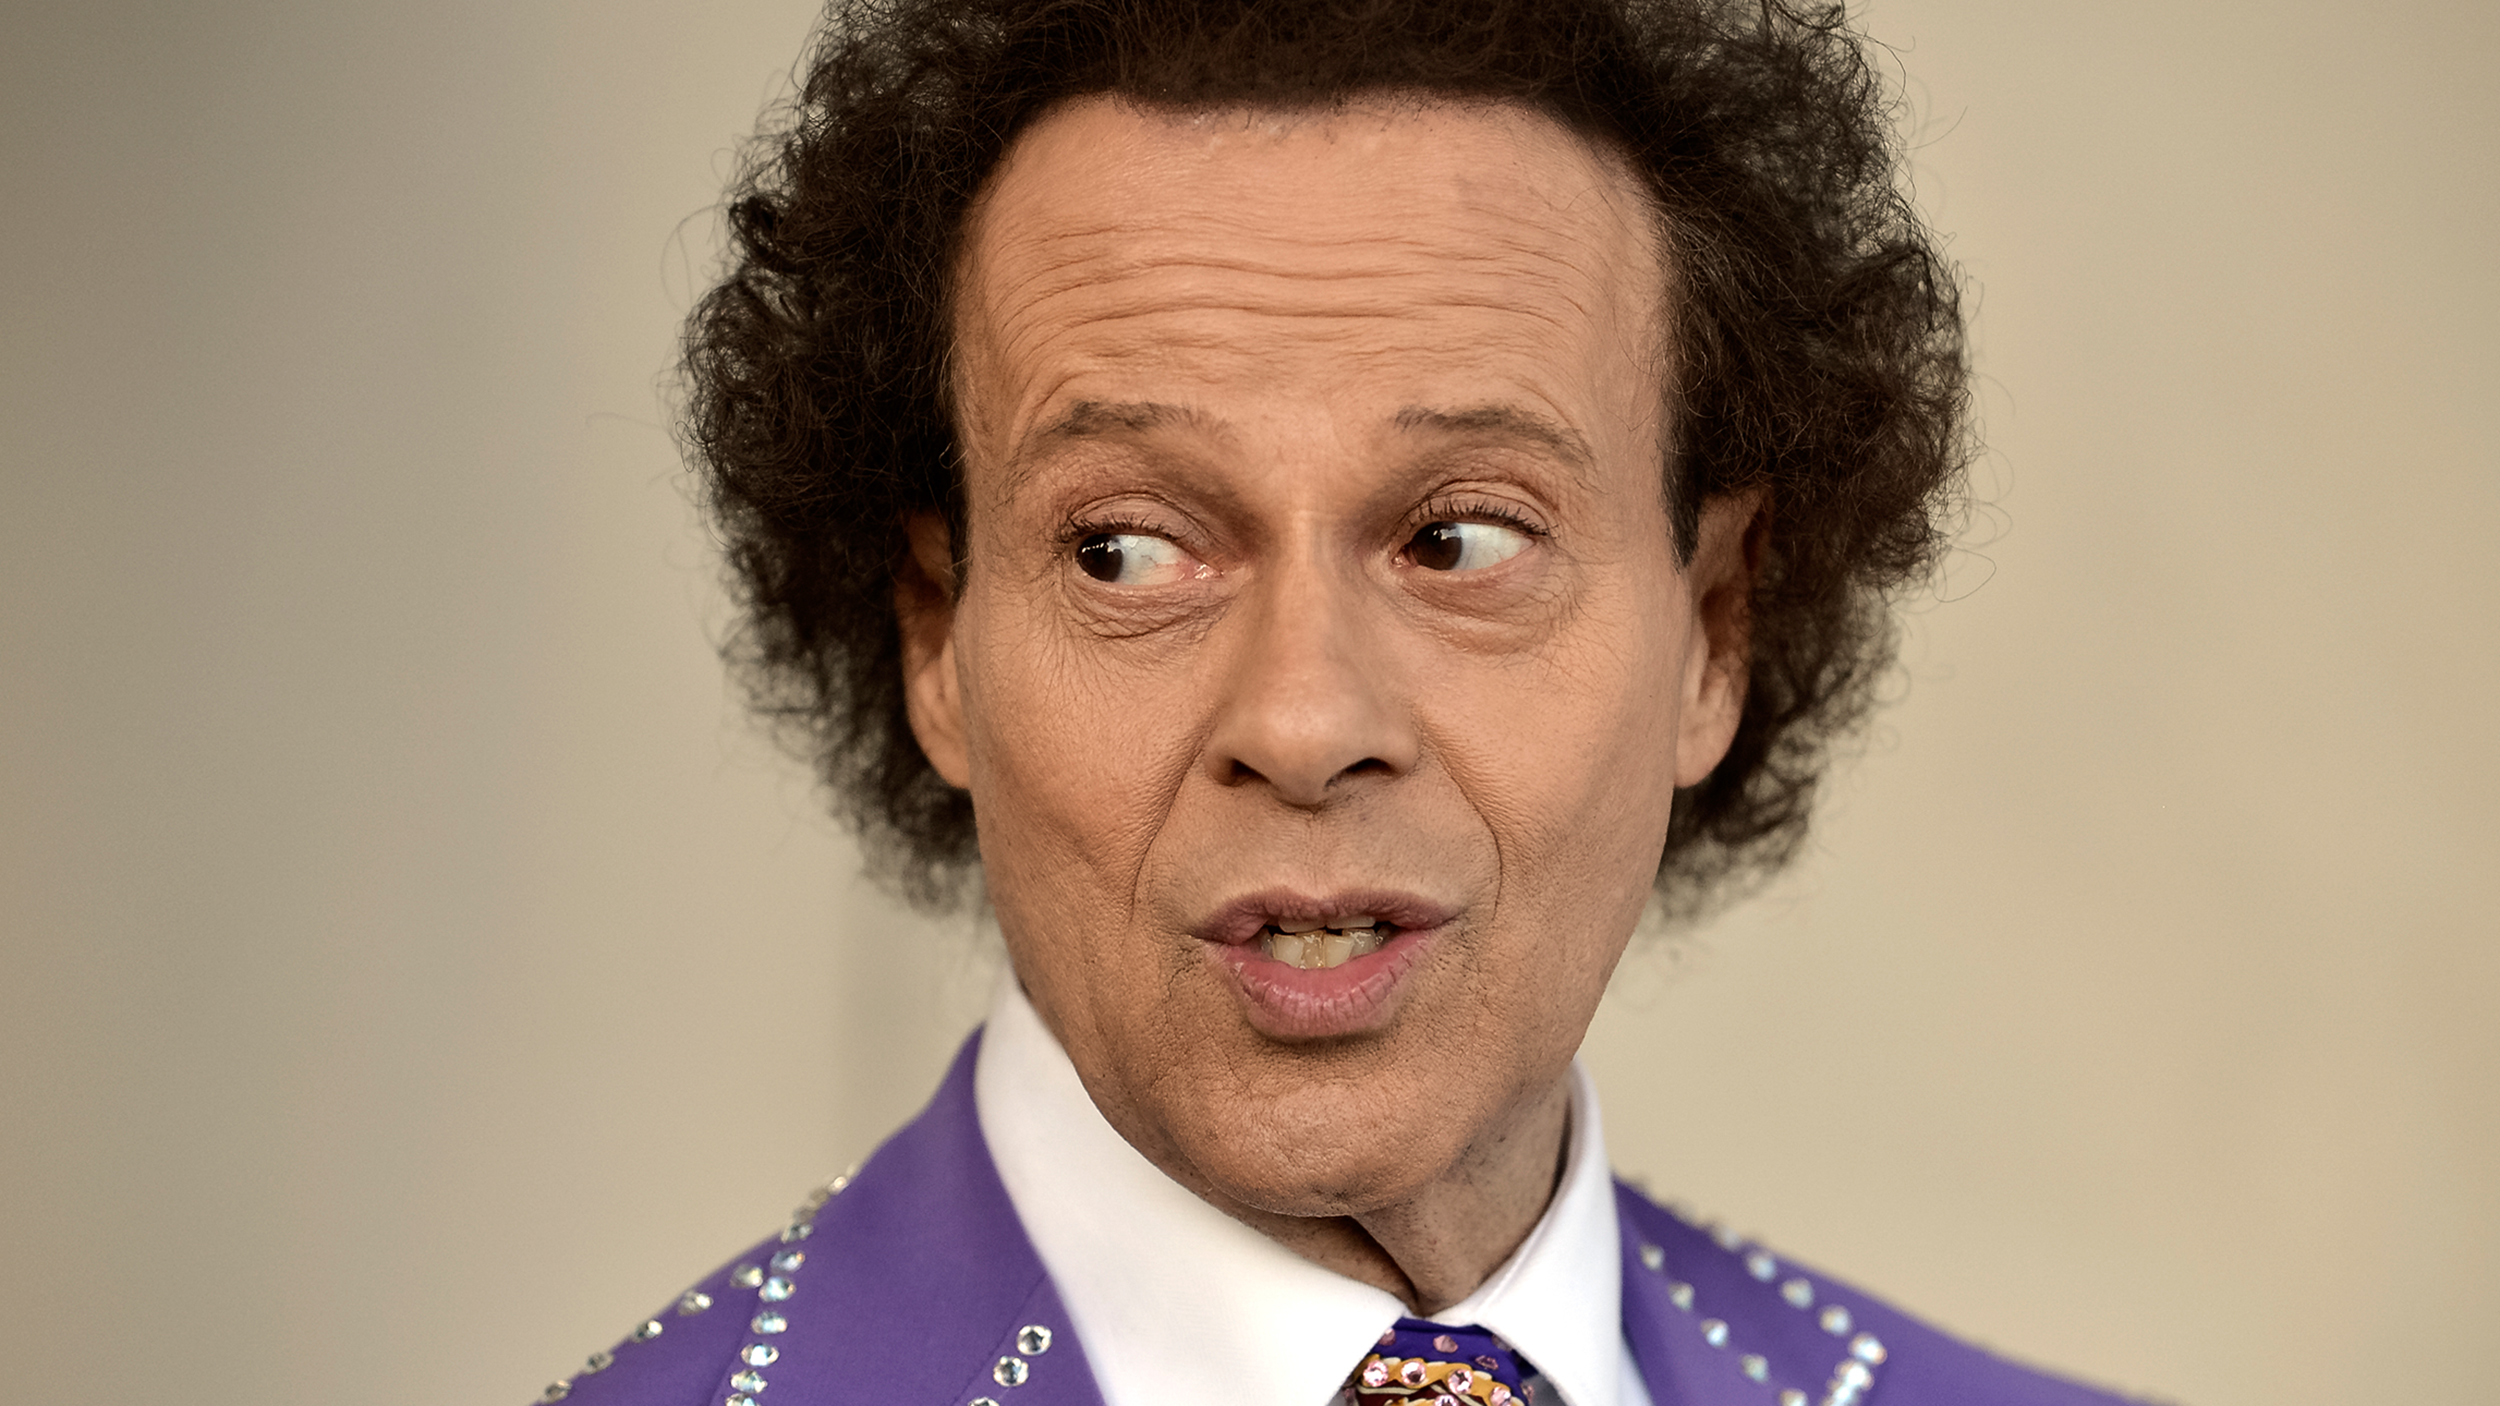 richard simmons shake shake shake